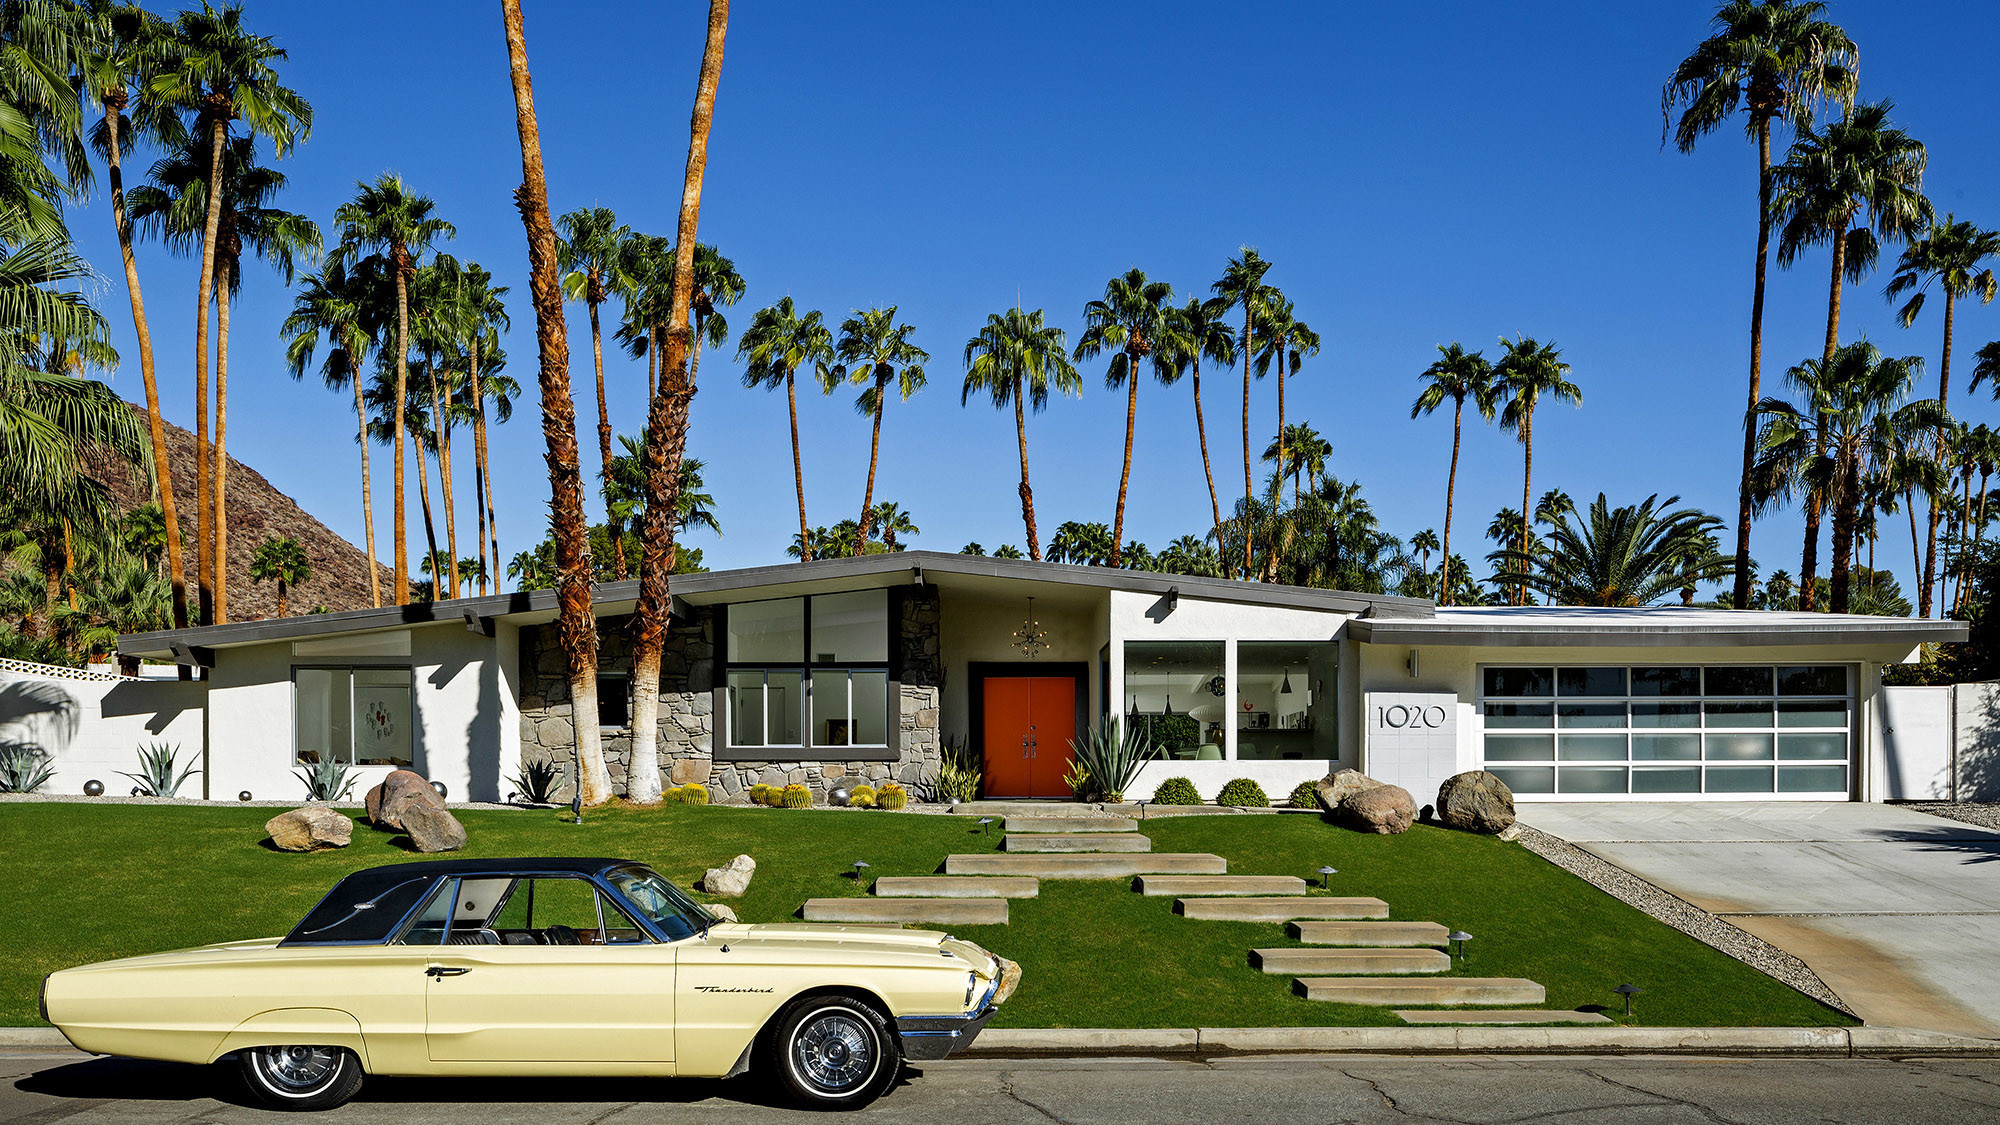 midcentury moderns appeal is simple it fits the socal lifestyle la times - Mid Century Modern Homes